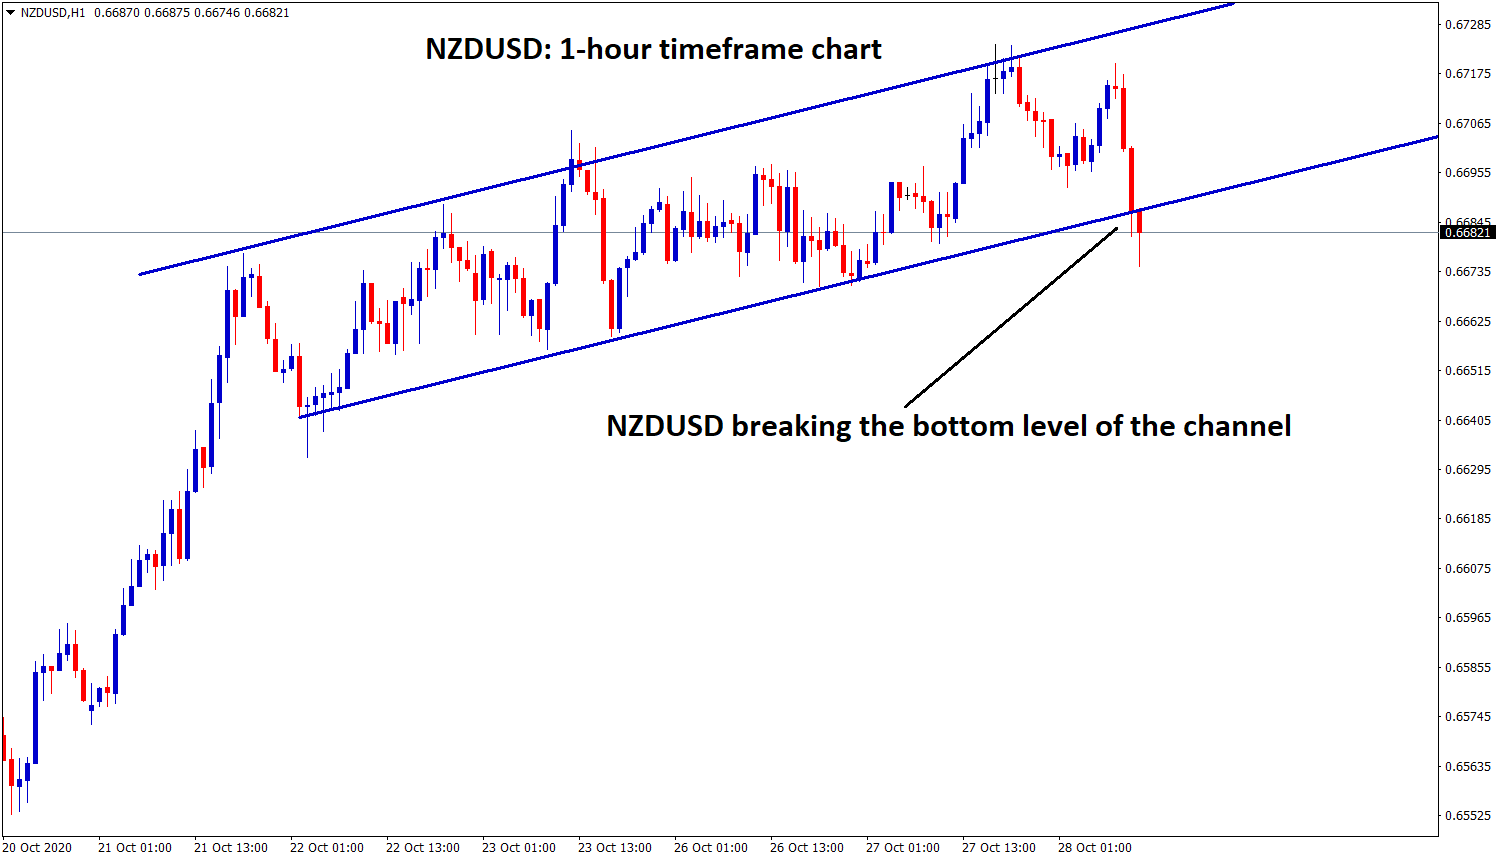 nzdusd breaking the bottom level of the channel